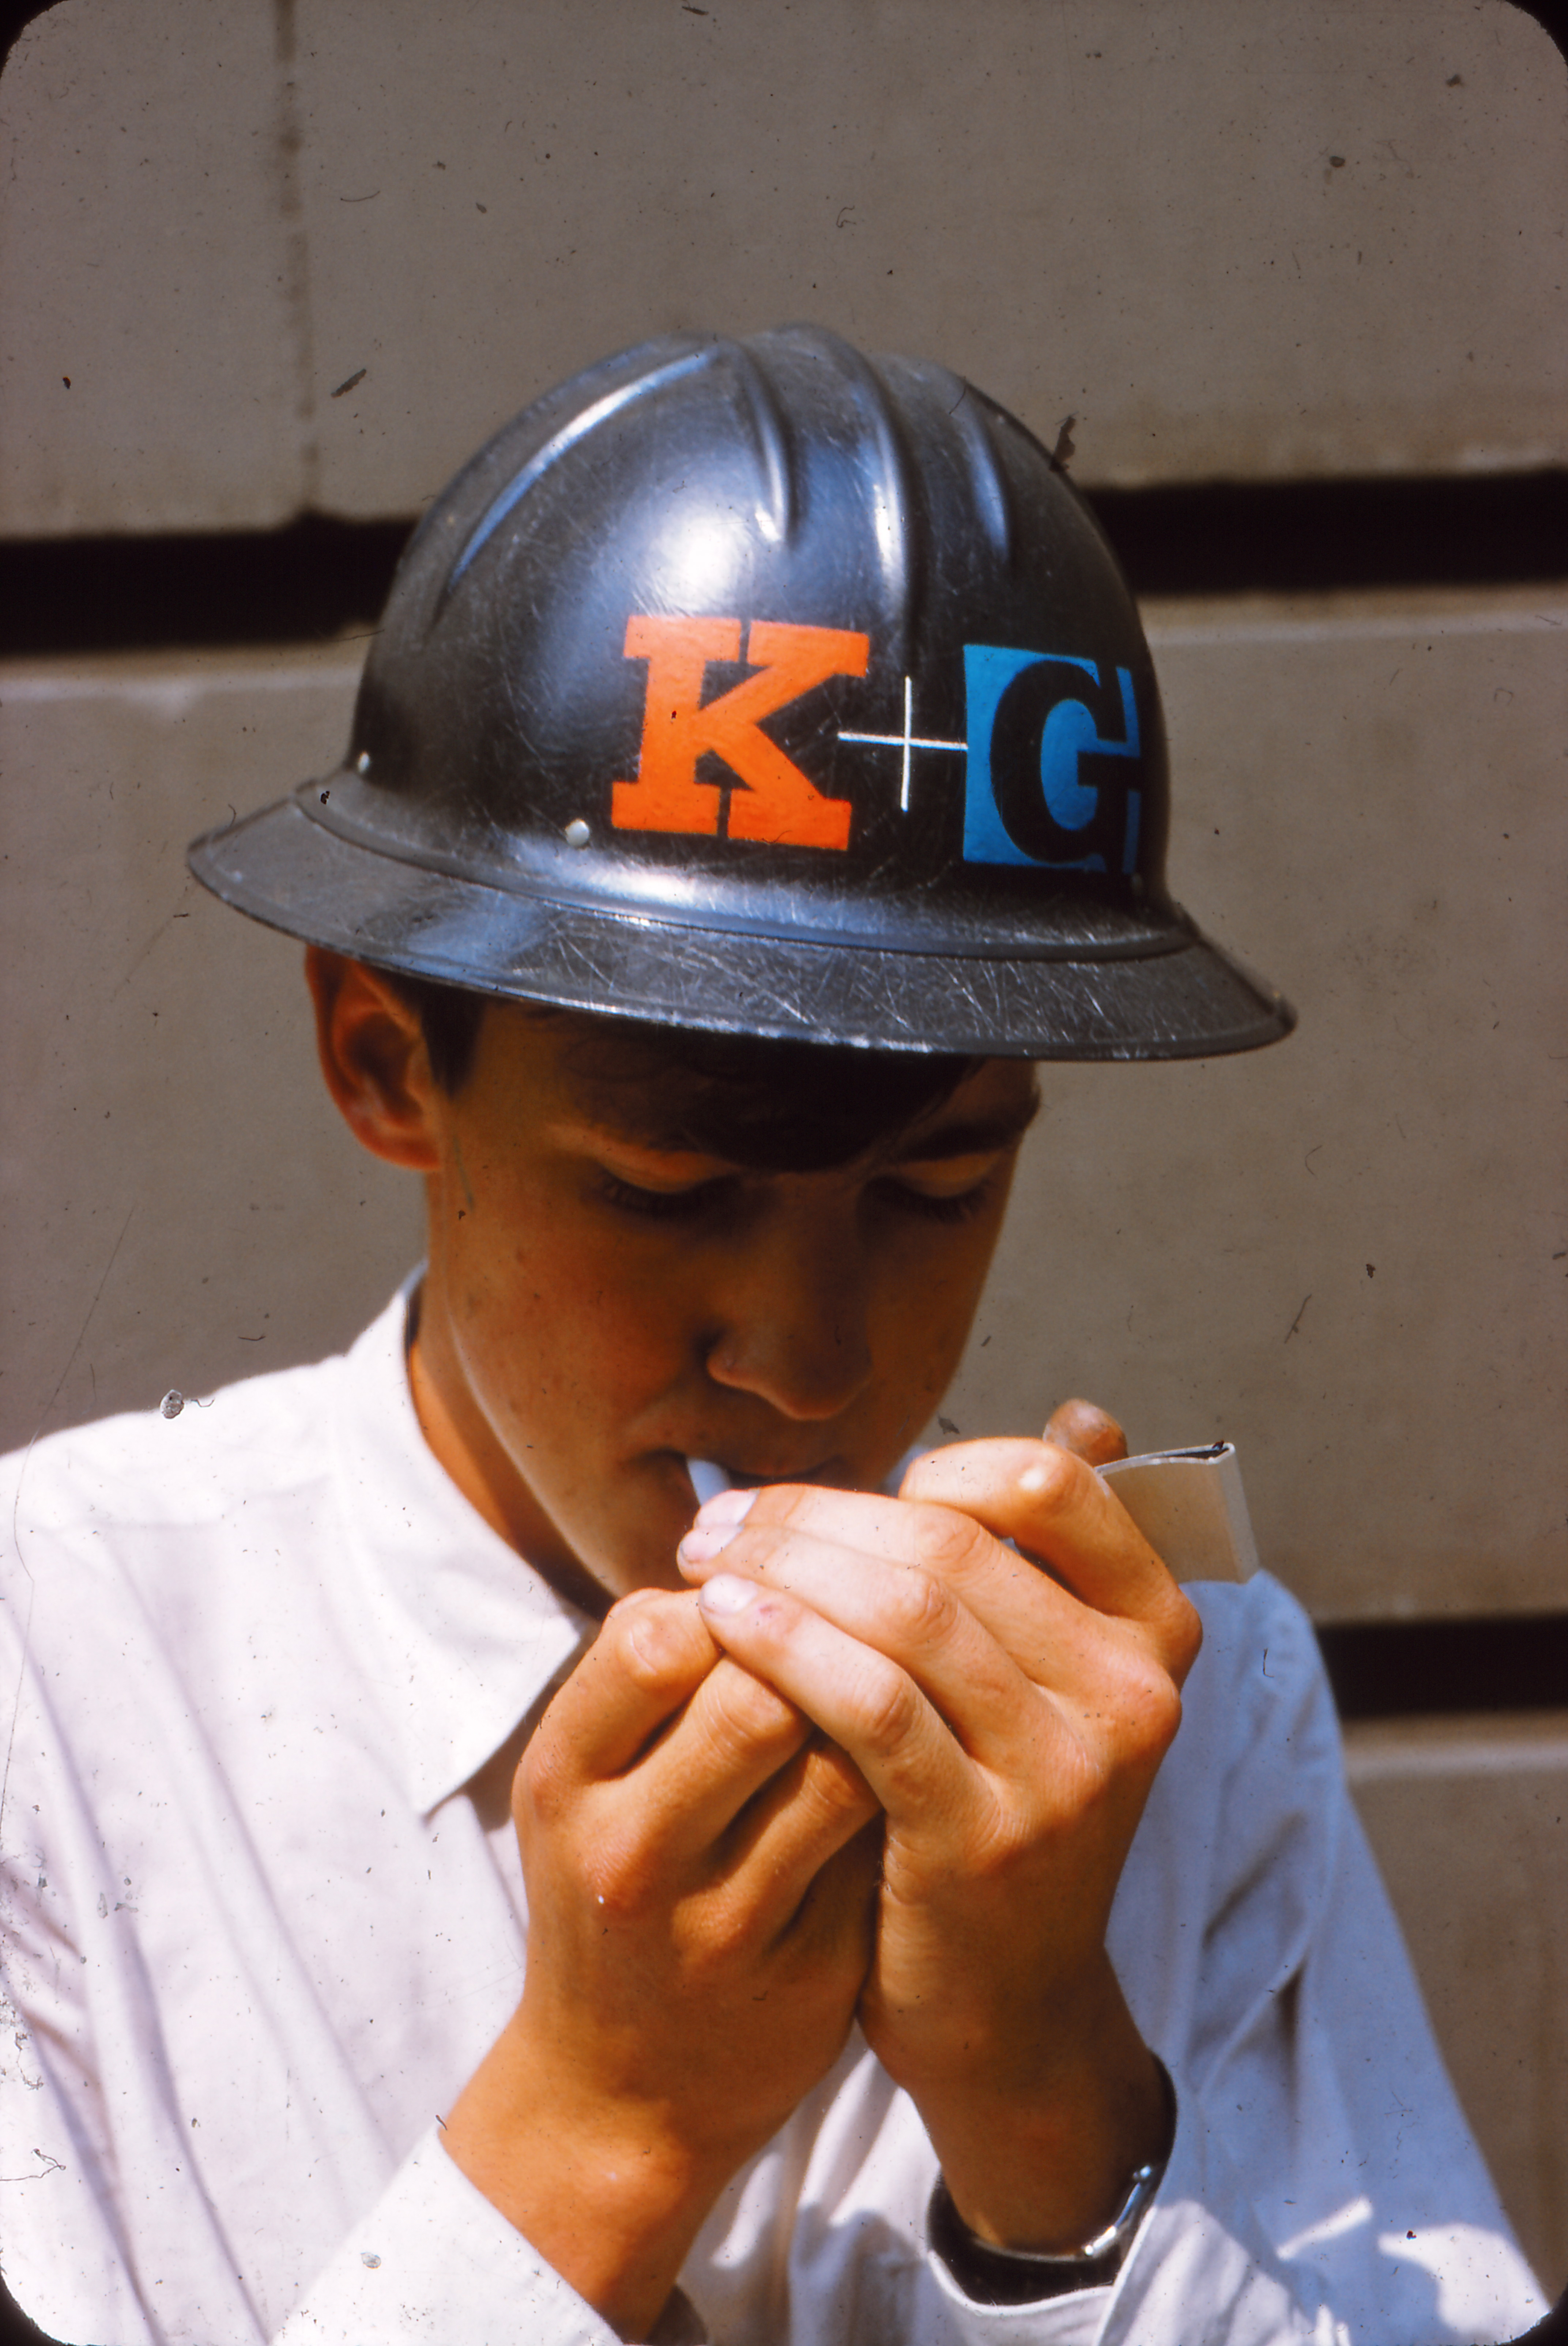 K+G Architects and Engineers identity, 1950s